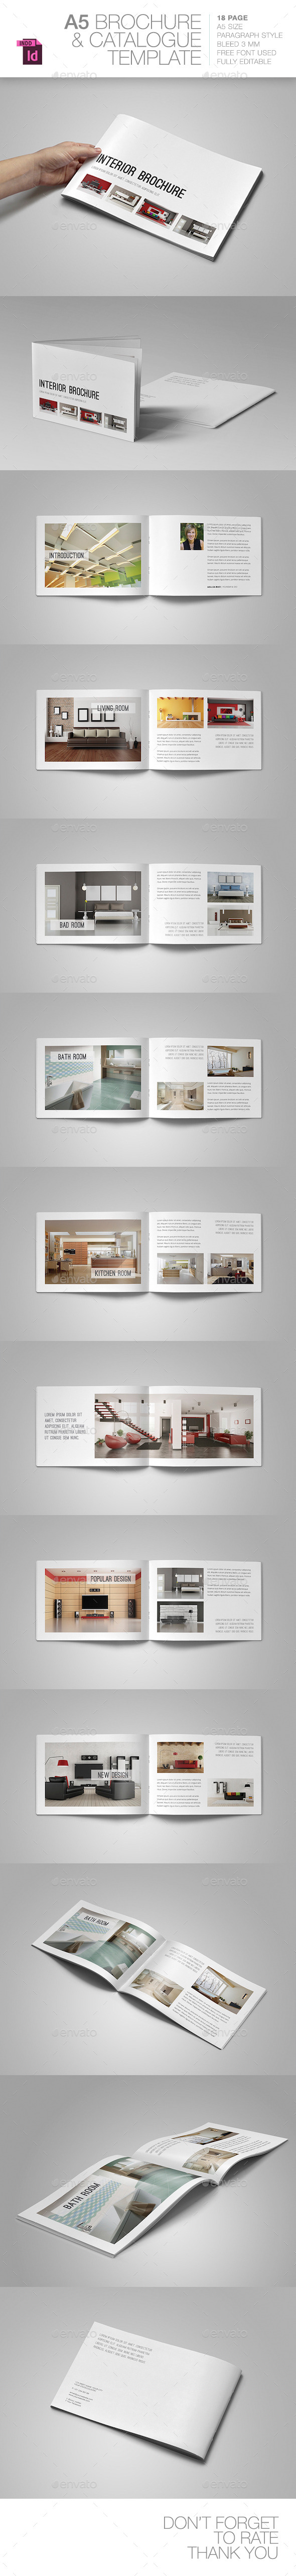 GraphicRiver A5 Brochure Template 9466122